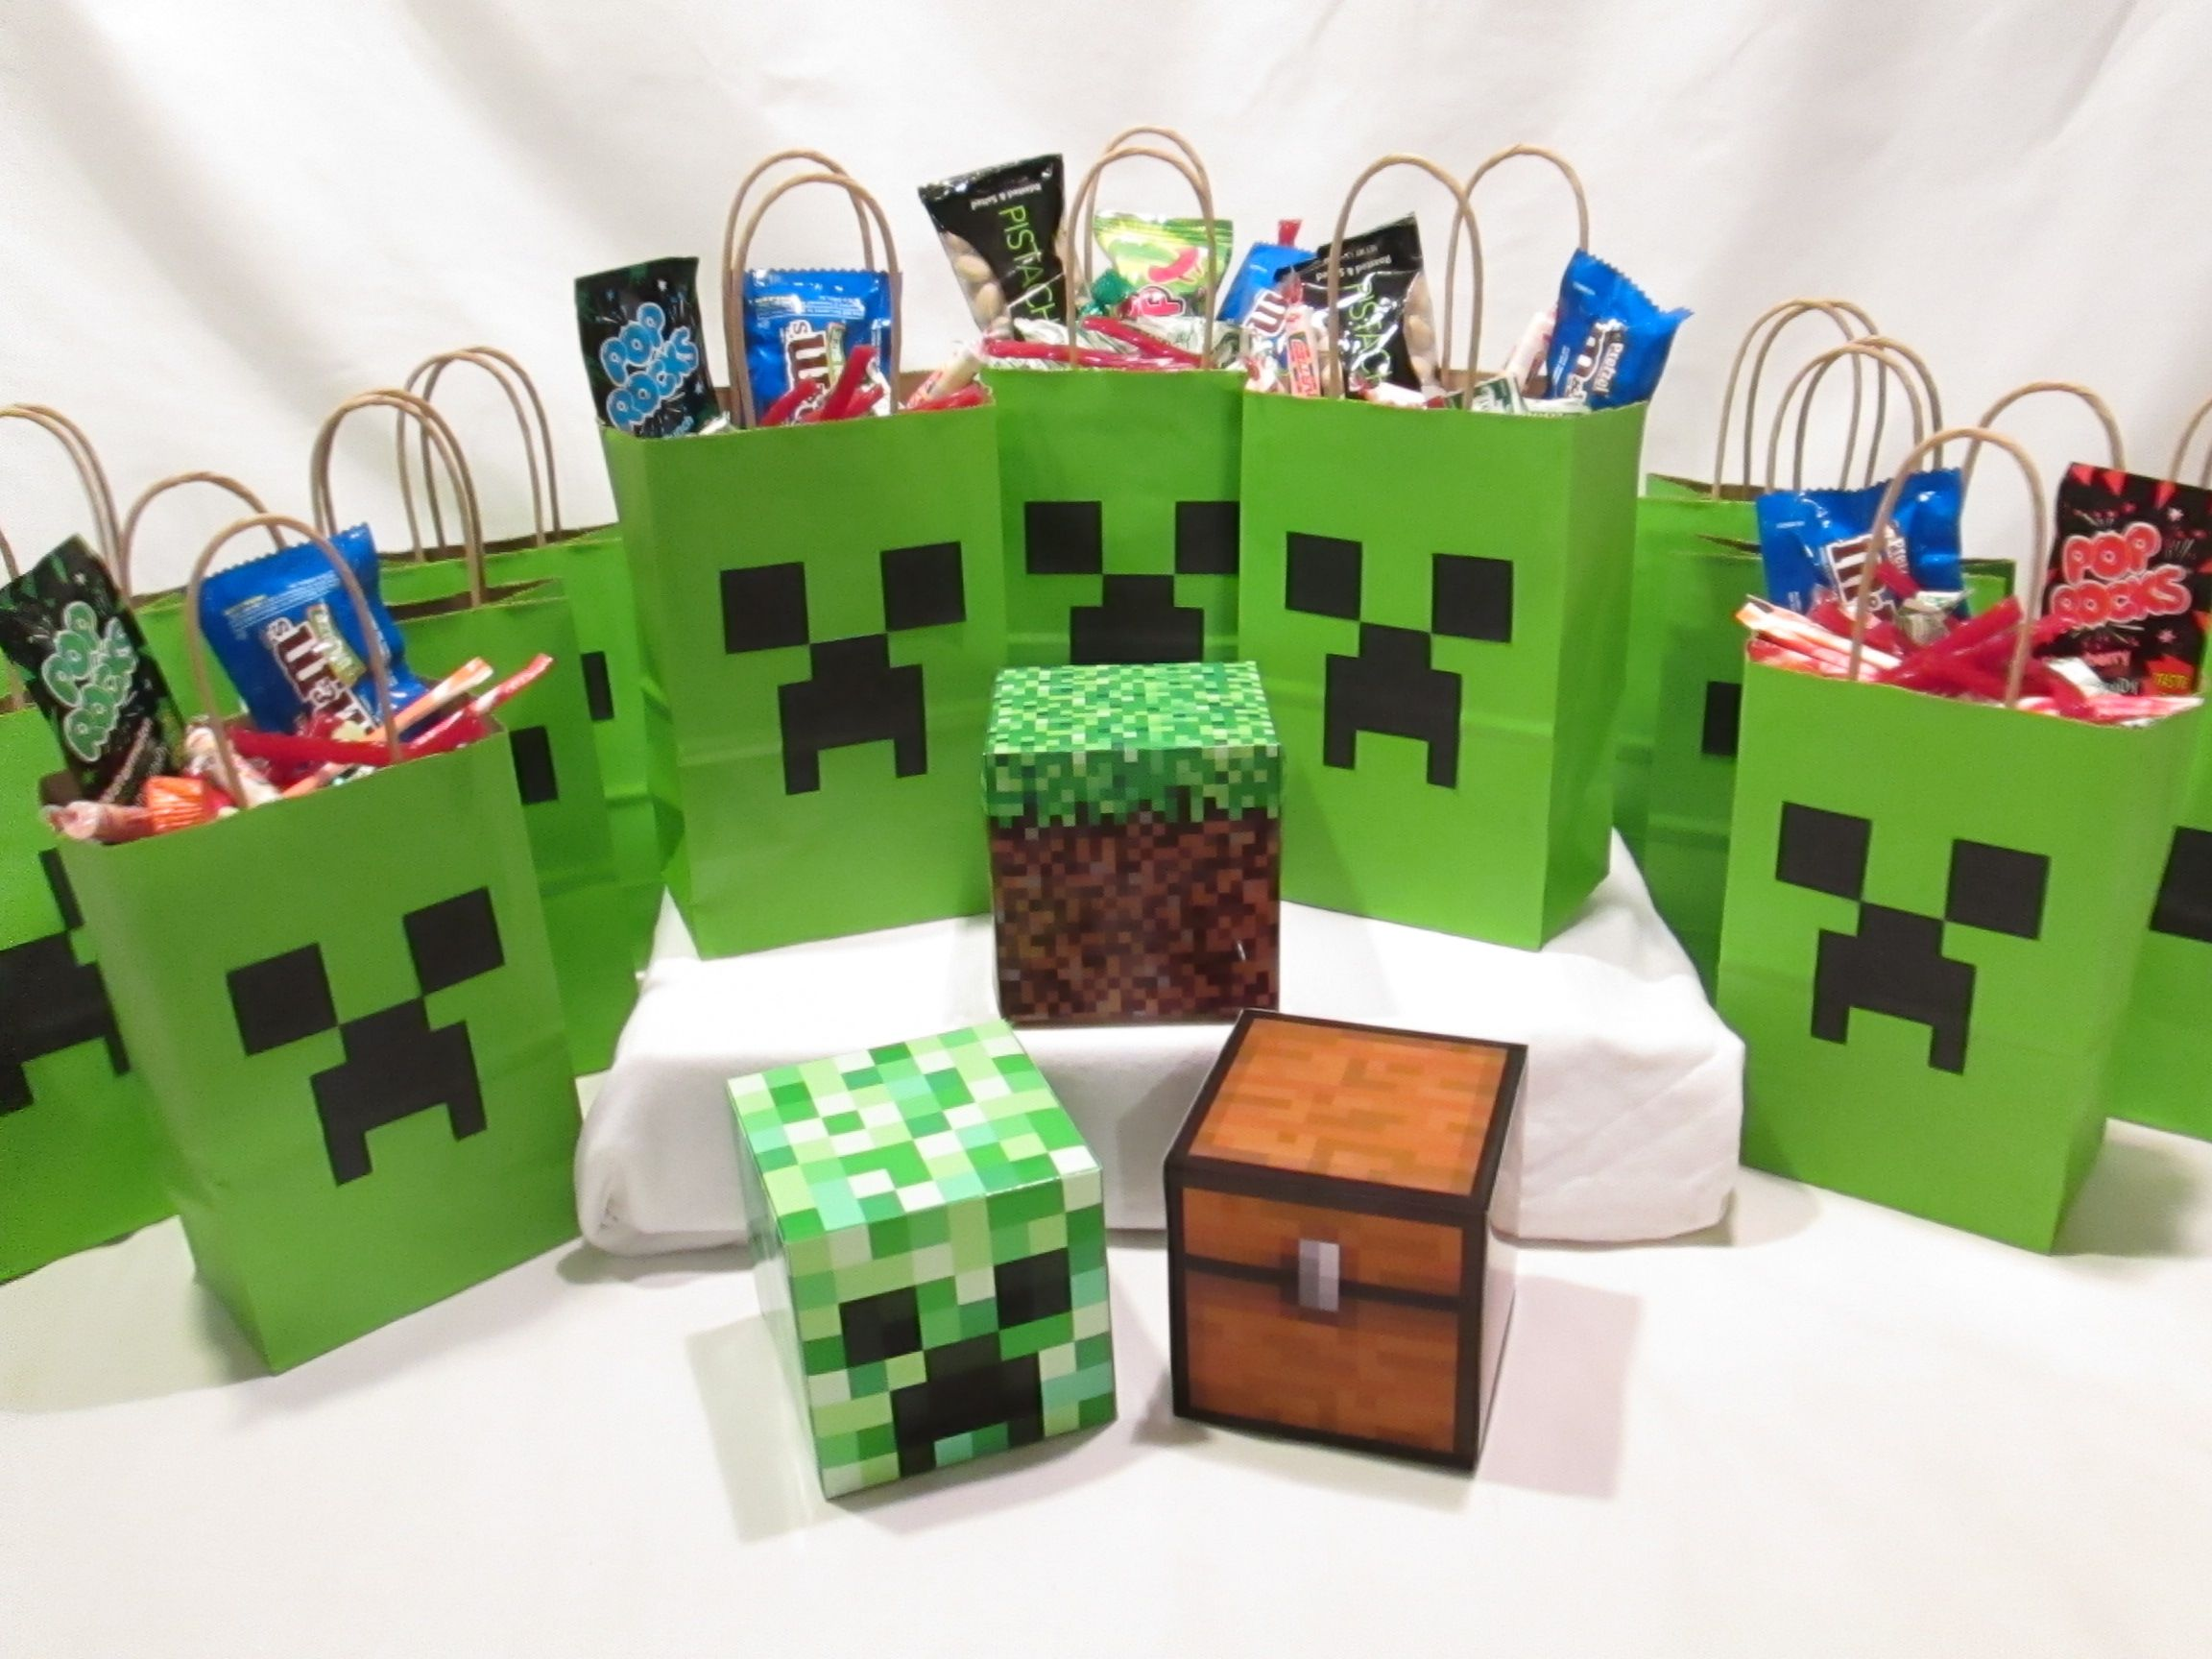 Minecraft Party Decorations 12 Creeper Bags And 3 Solid